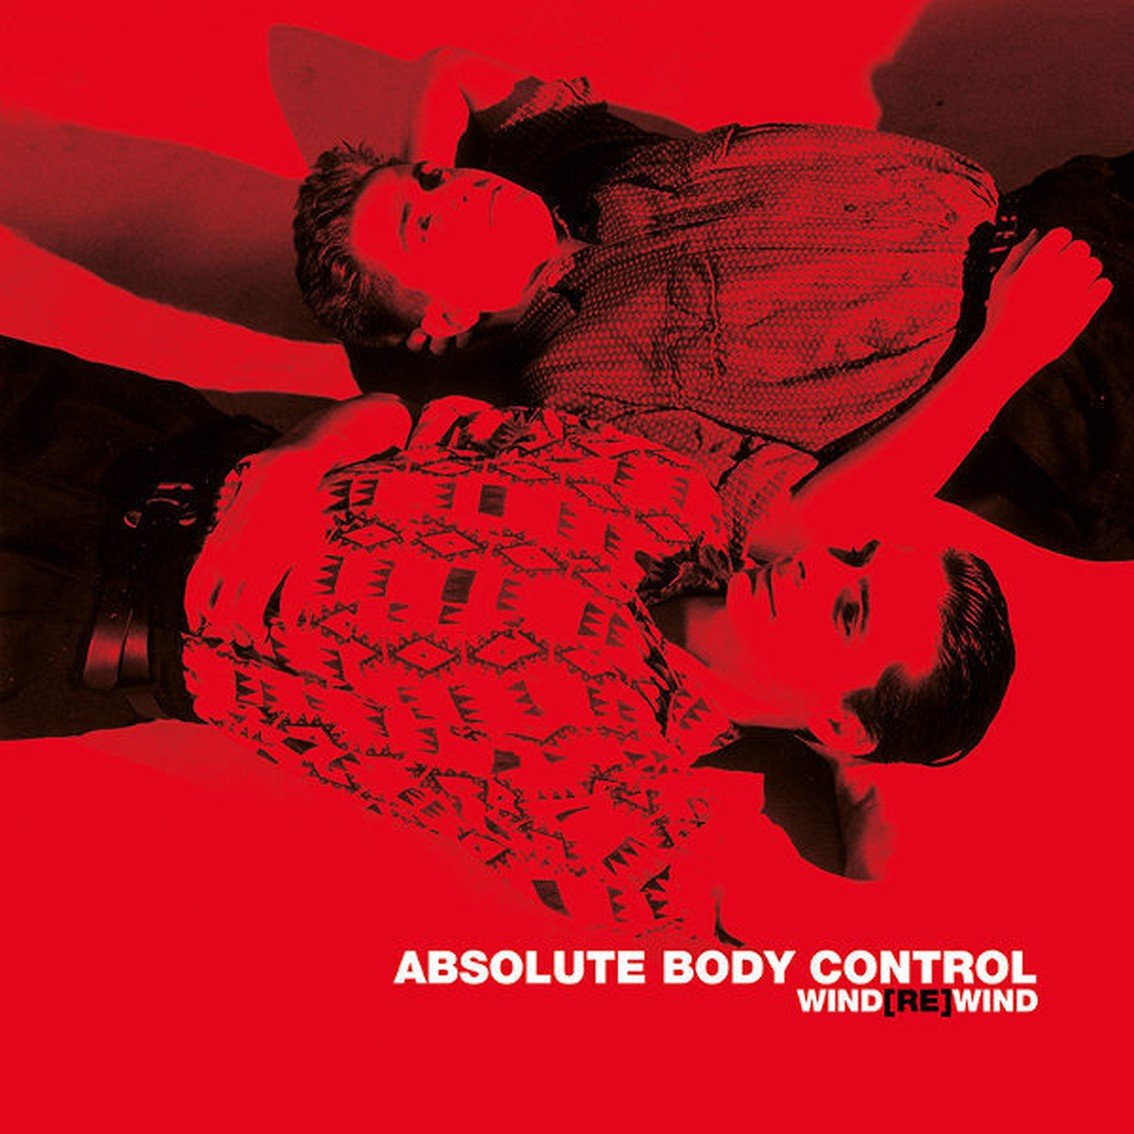 Absolute Body Control sees 2007 album'Wind(Re)Wind' released as 2LP set on red vinyl with 3 extra tracks - order now